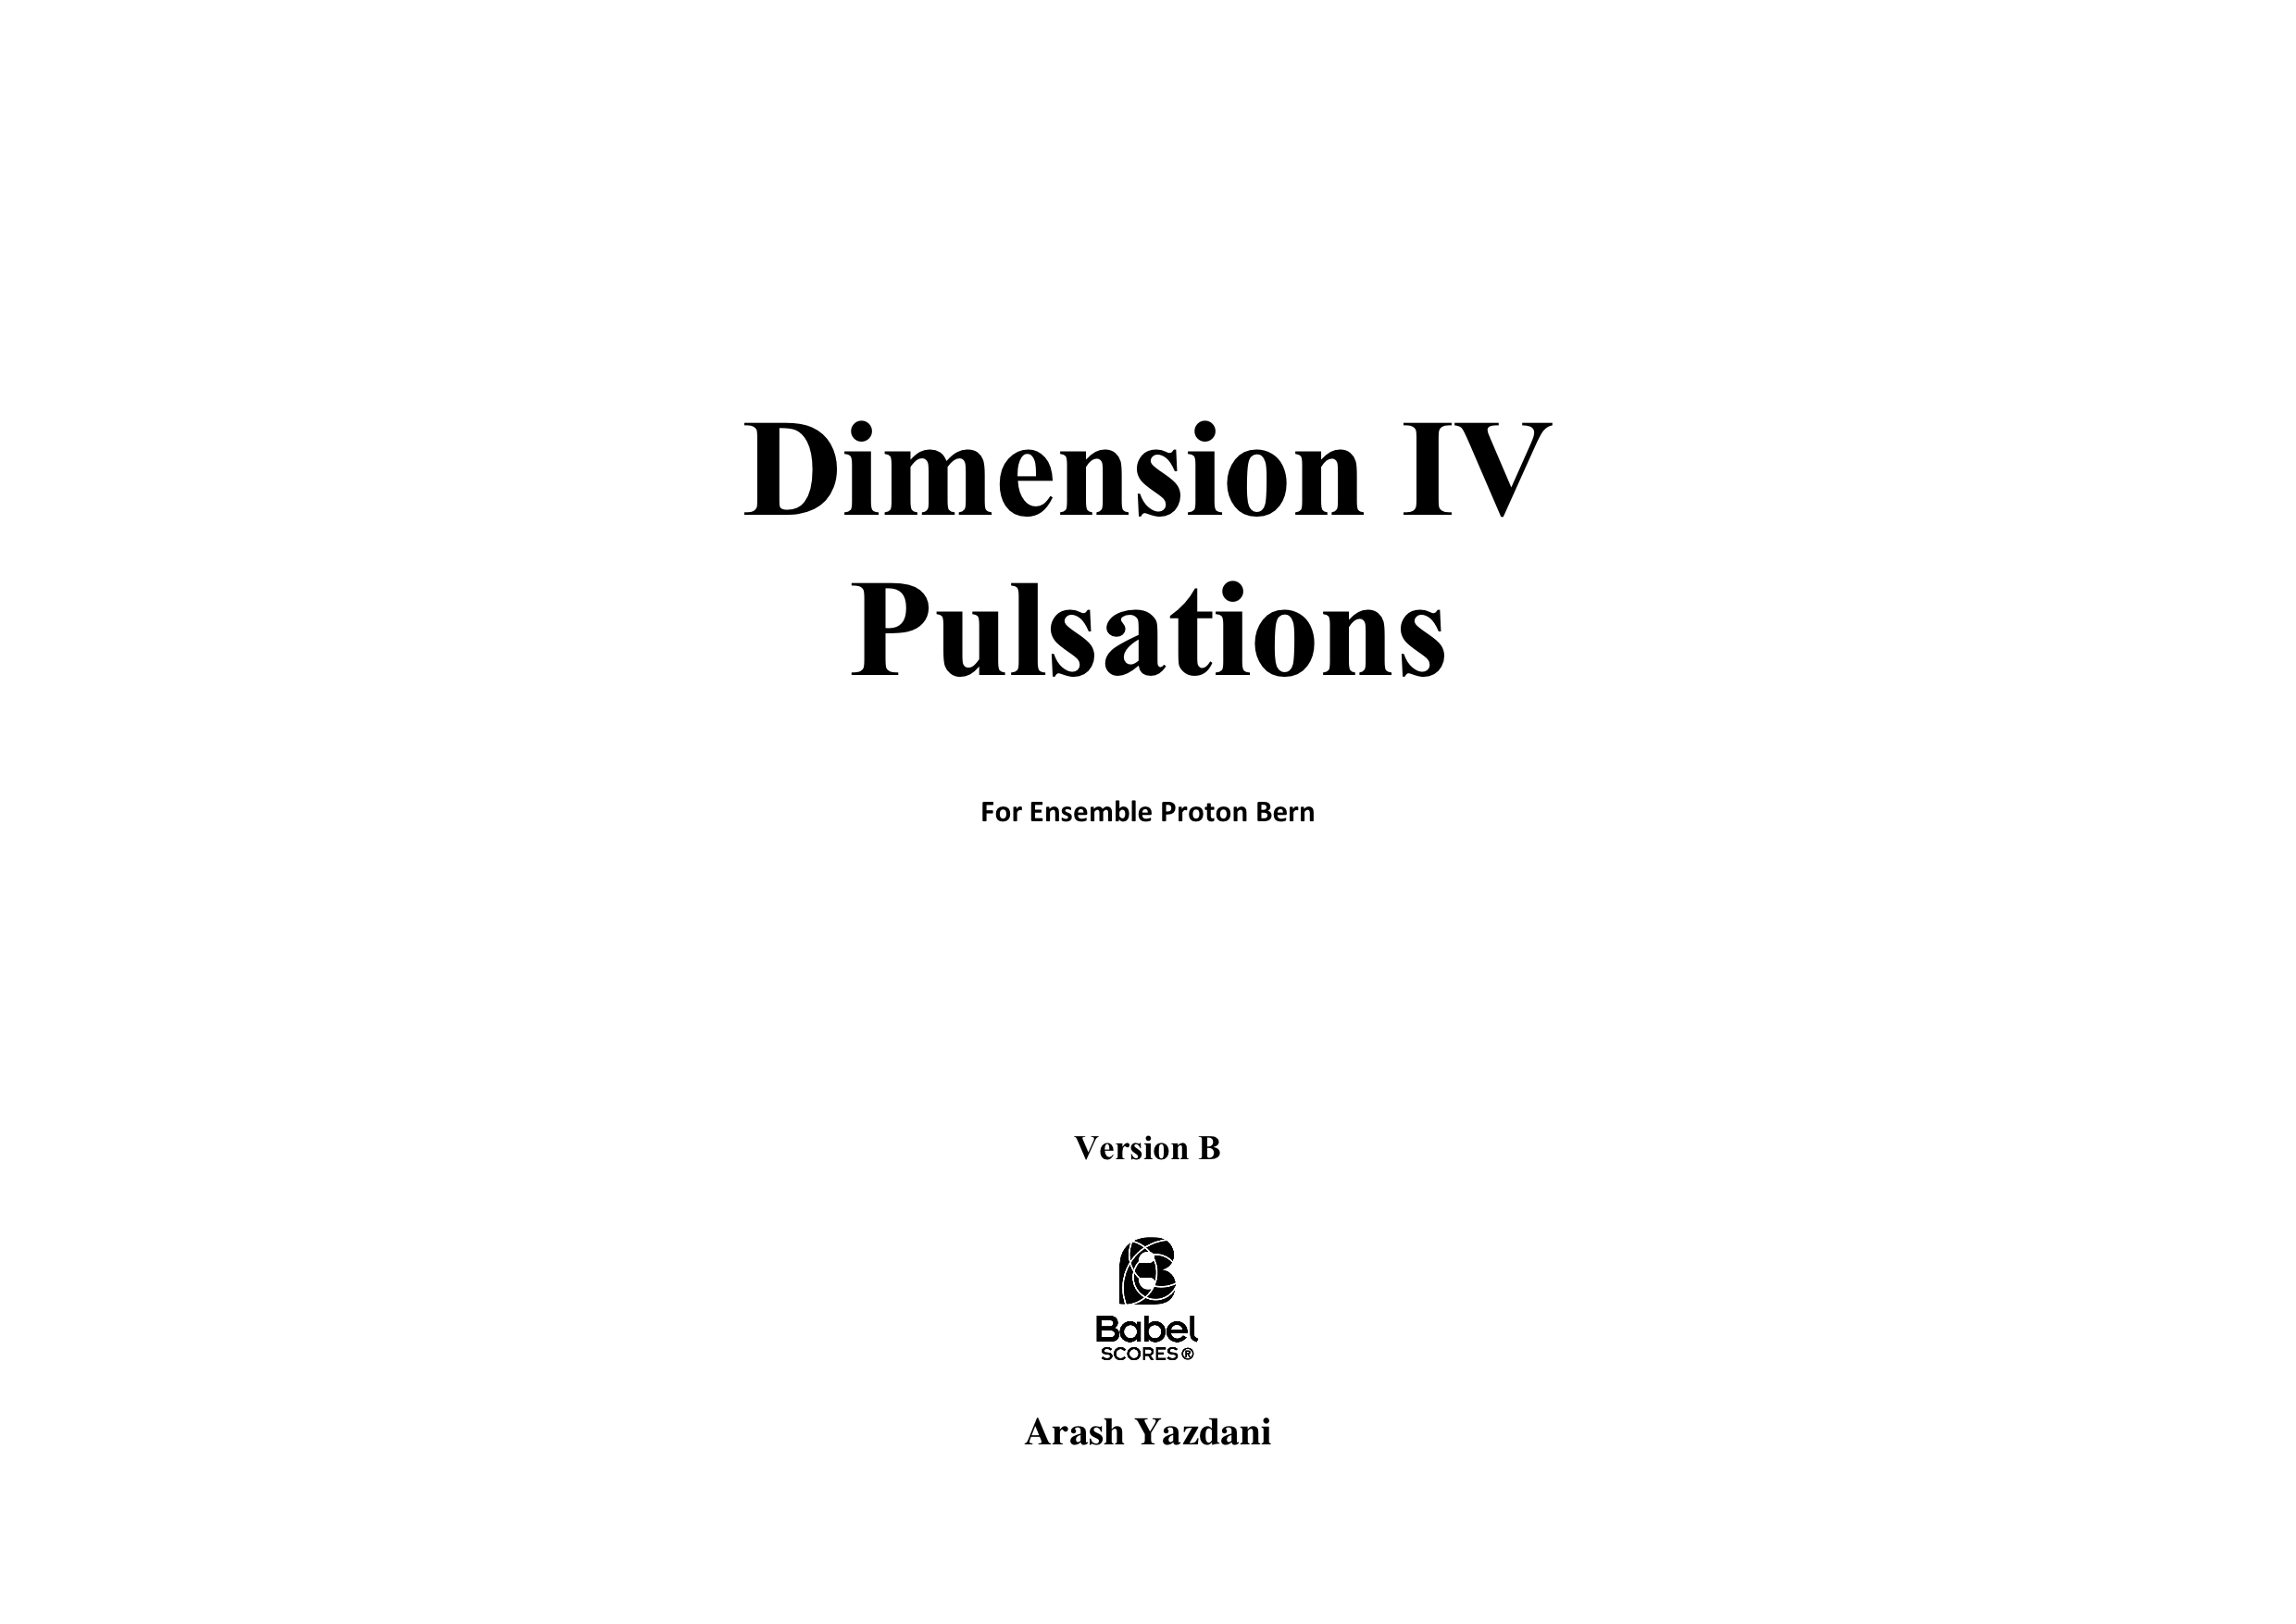 Dimension IV Version B A3 z 3 1 737